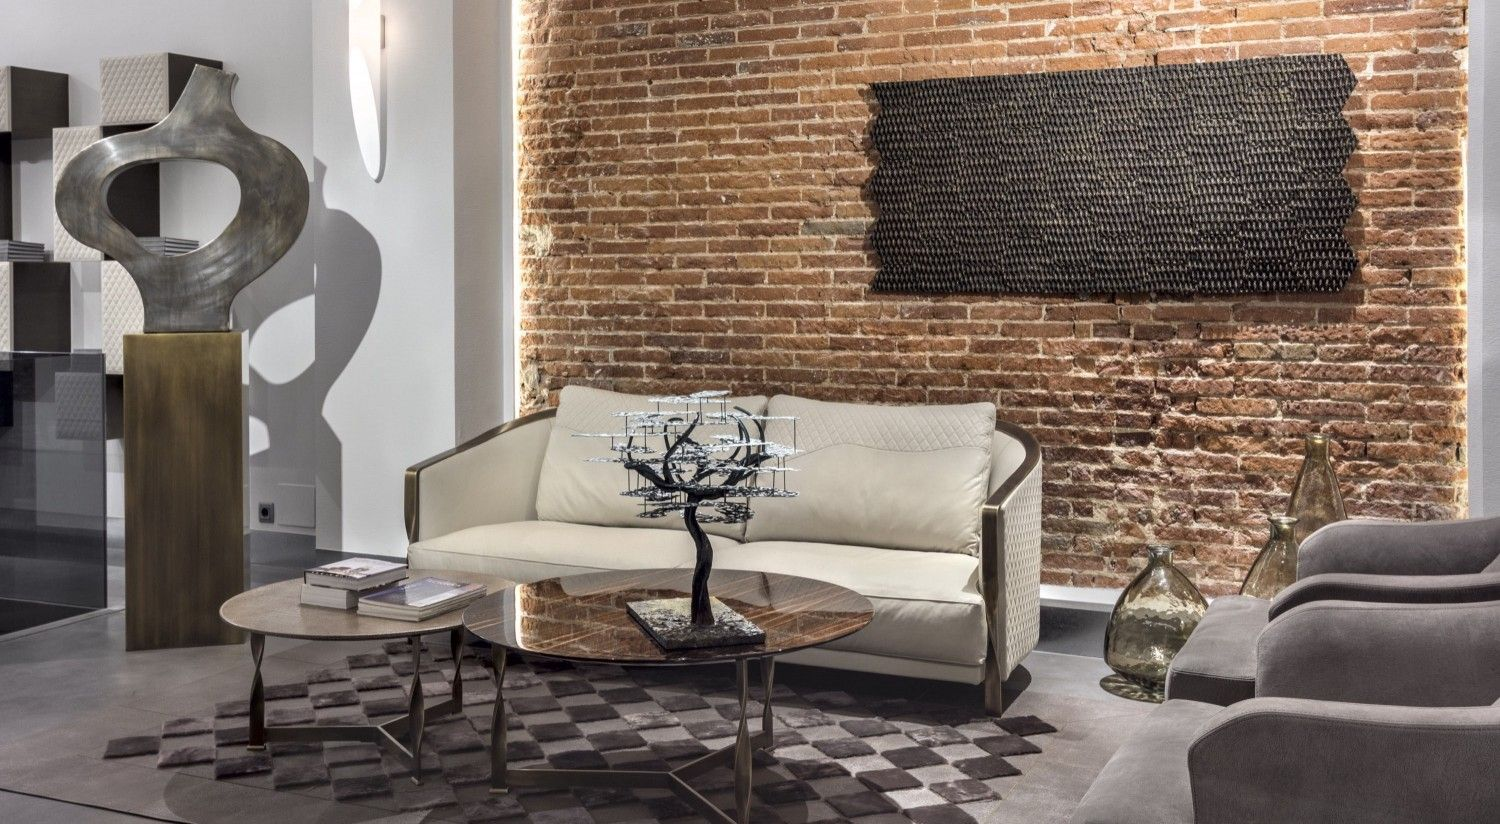 Mobili rugiano ~ Rugiano showroom madrid product: sofa pinterest luxury